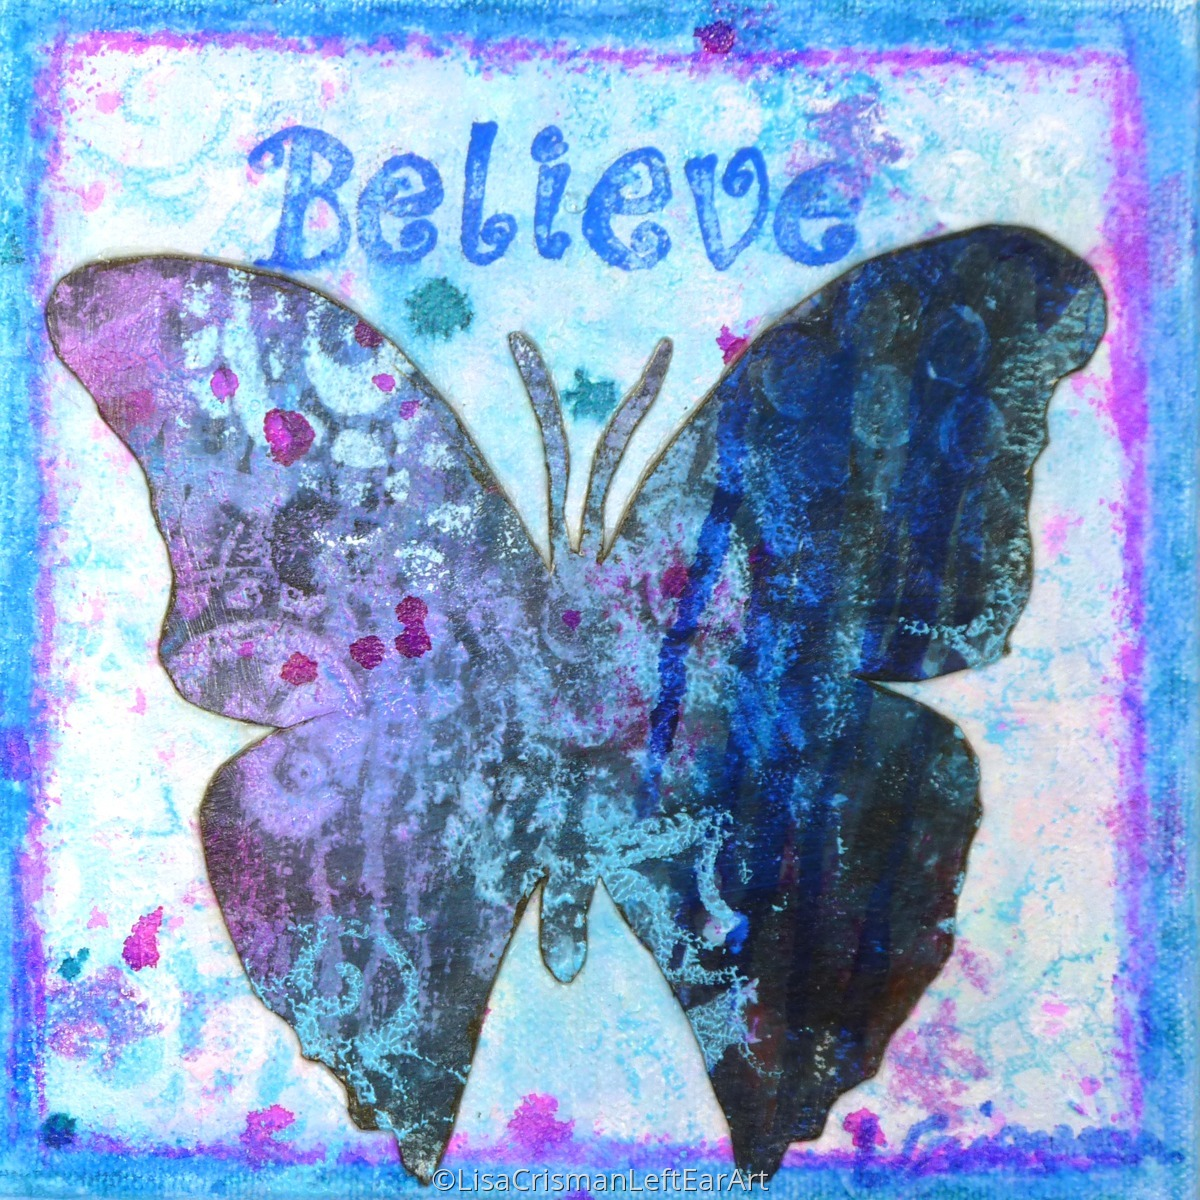 Believe (large view)